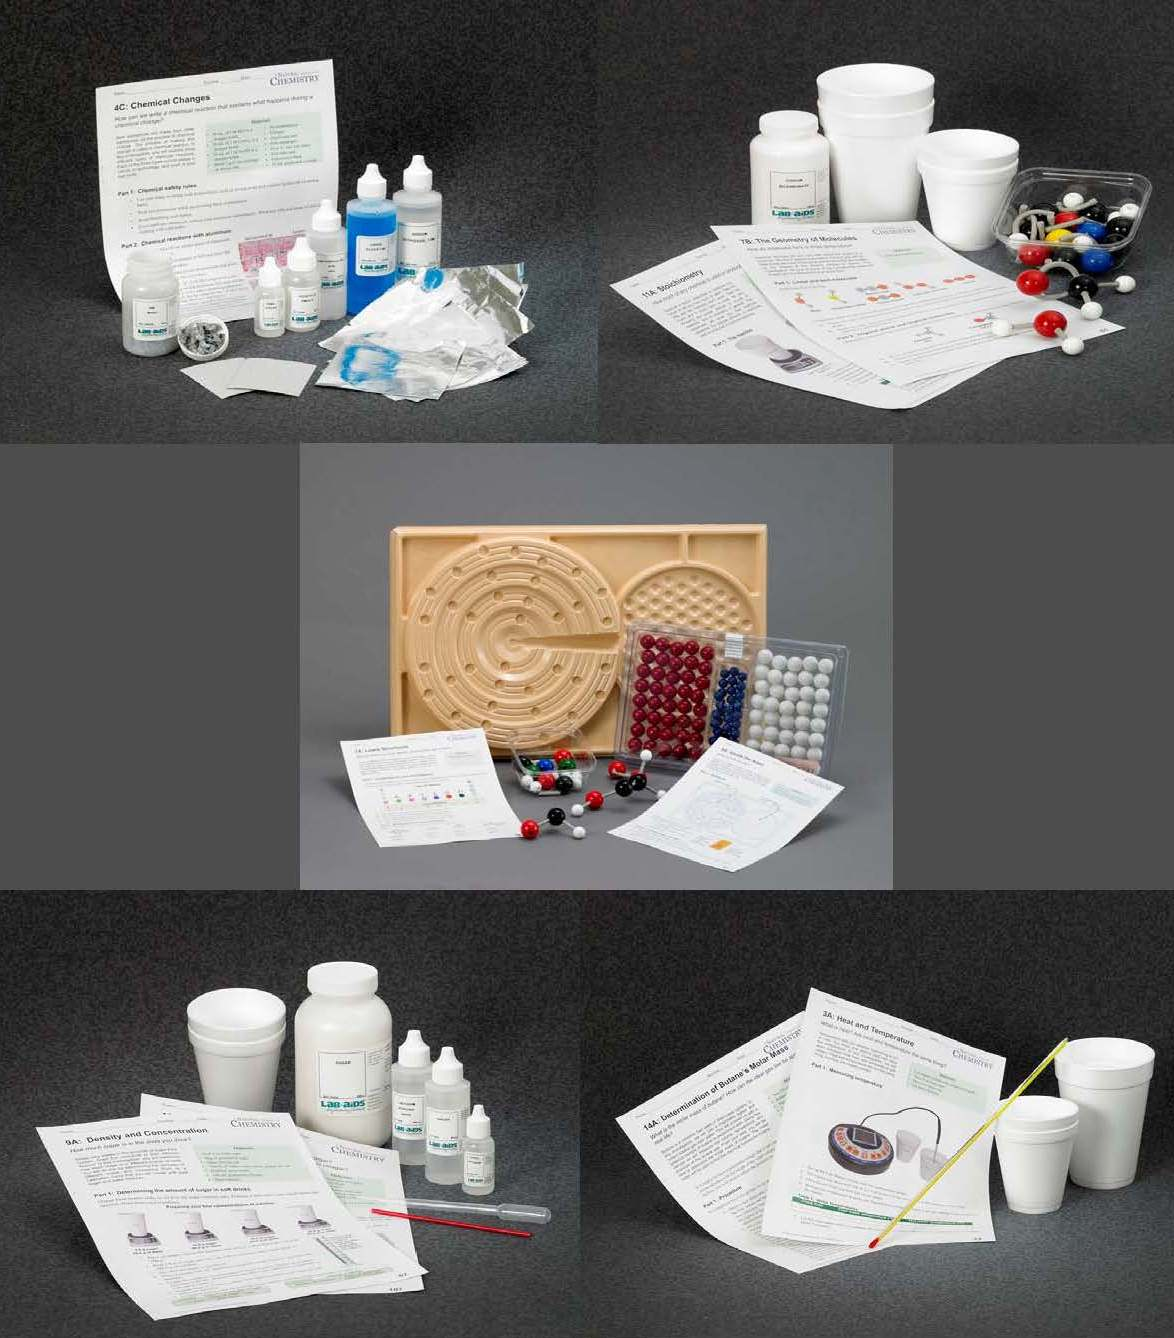 TEXAS Chemistry Review Bundle Package EXPAND-A-KIT